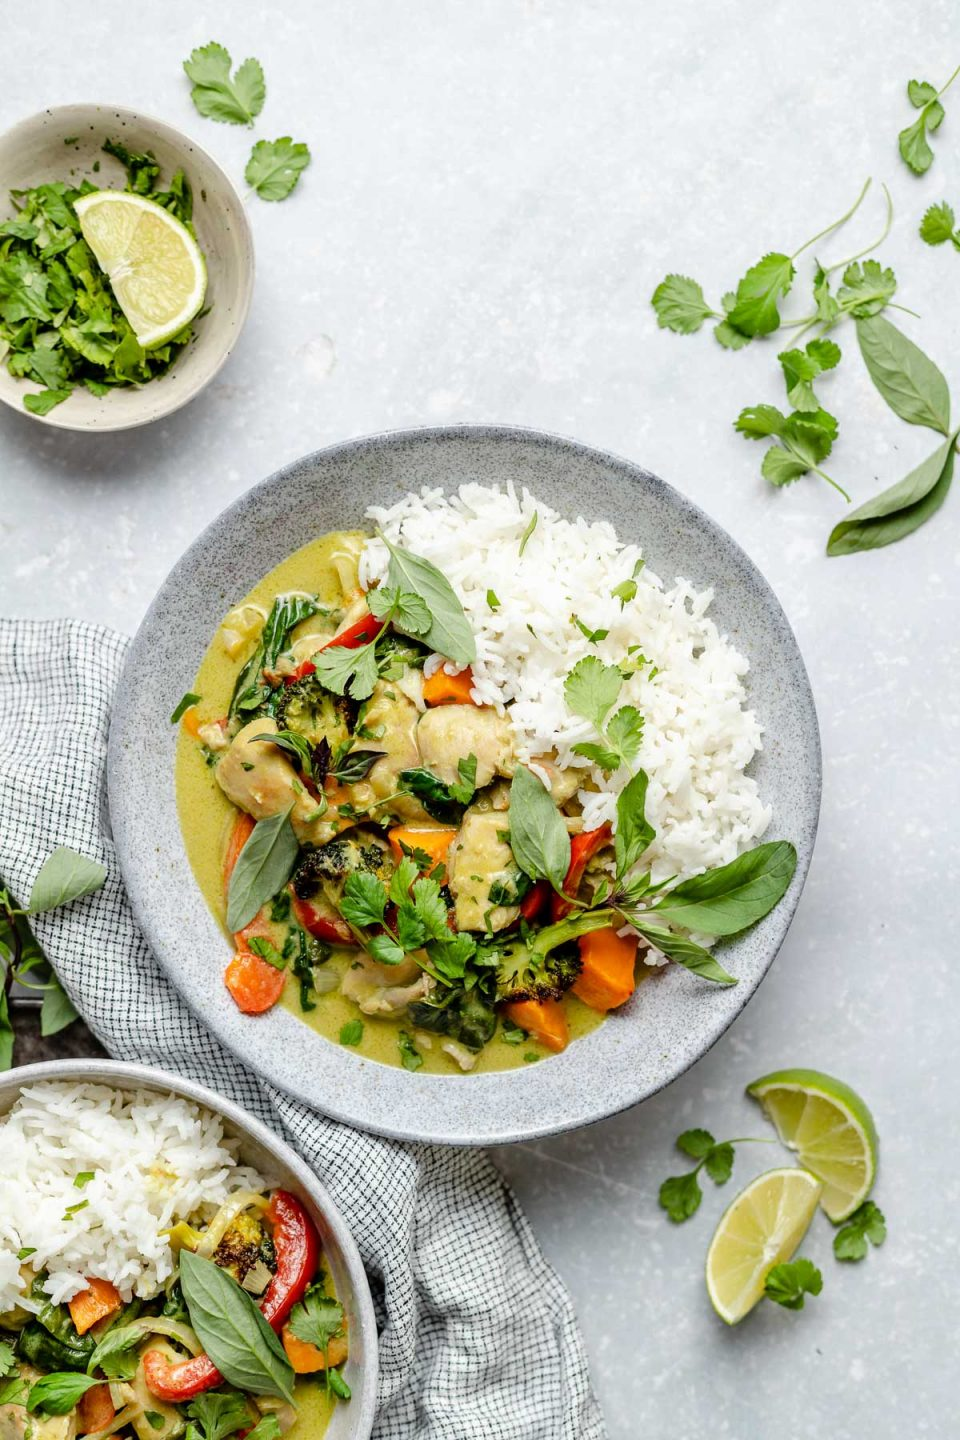 Thai green curry chicken in bowls with fluffy white rice, topped with fresh cilantro & Thai basil. The bowls sit atop a light blue surface, next to lime wedges, fresh herbs, & a checkered blue & white linen napkin.